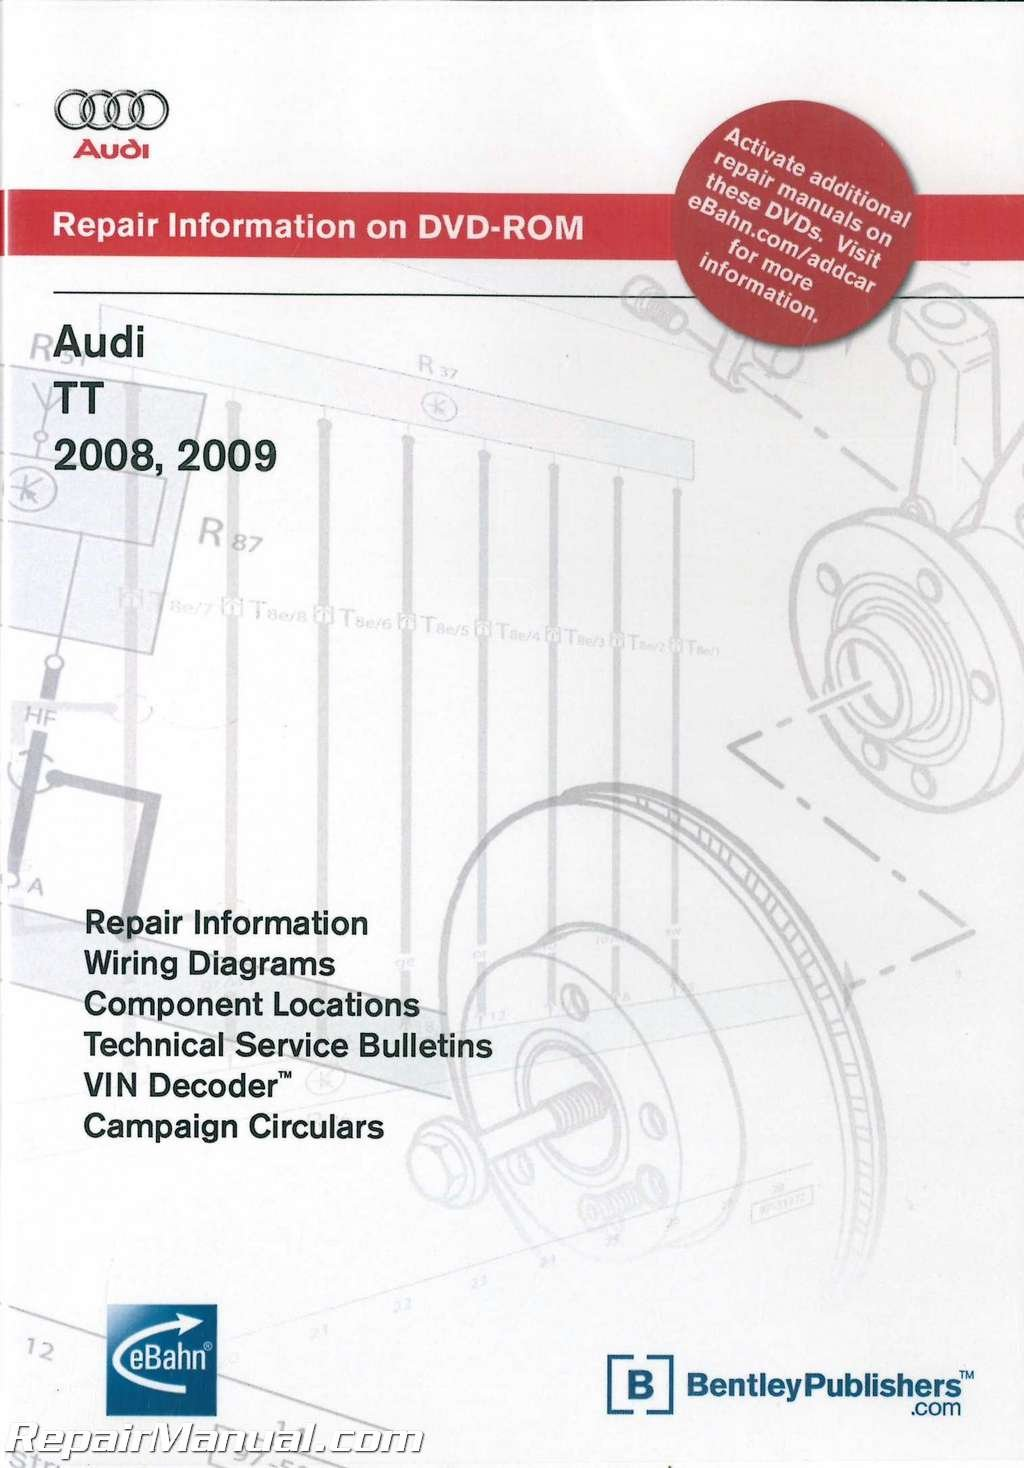 audi tt wiring diagram a8j7 2008 2009 audi tt repair manual dvd rom amazon com books  2008 2009 audi tt repair manual dvd rom